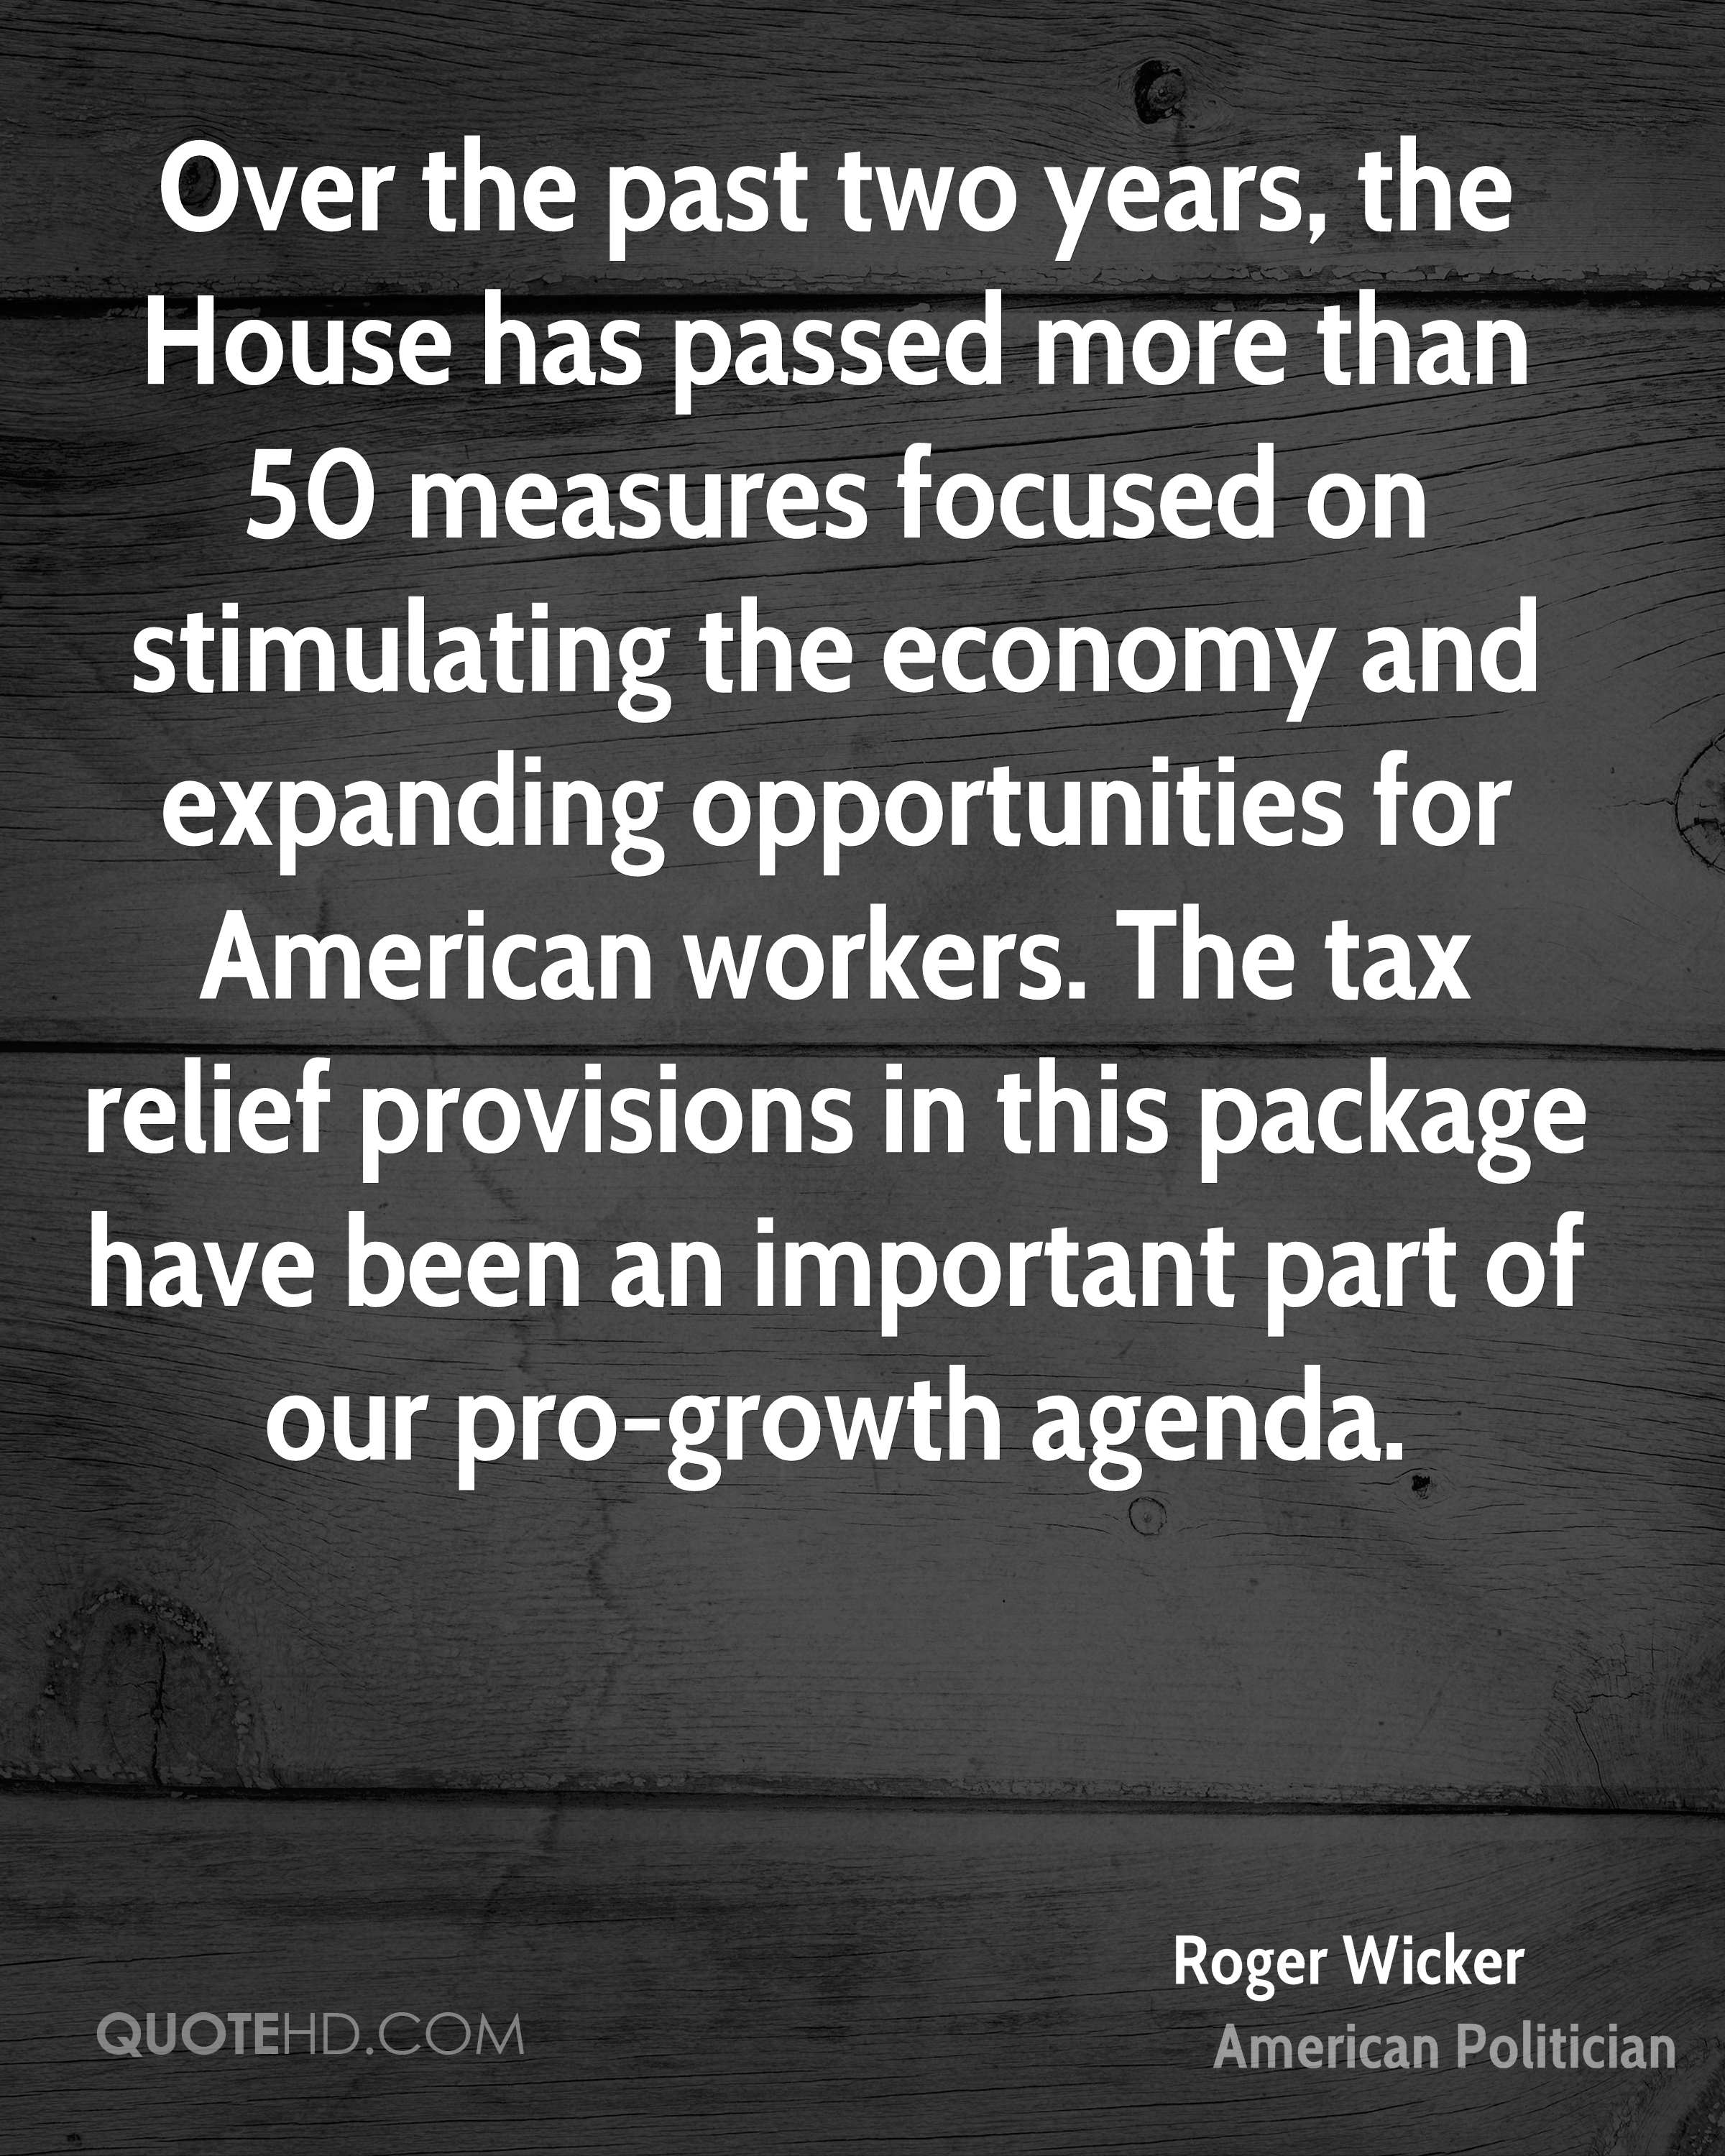 Over the past two years, the House has passed more than 50 measures focused on stimulating the economy and expanding opportunities for American workers. The tax relief provisions in this package have been an important part of our pro-growth agenda.